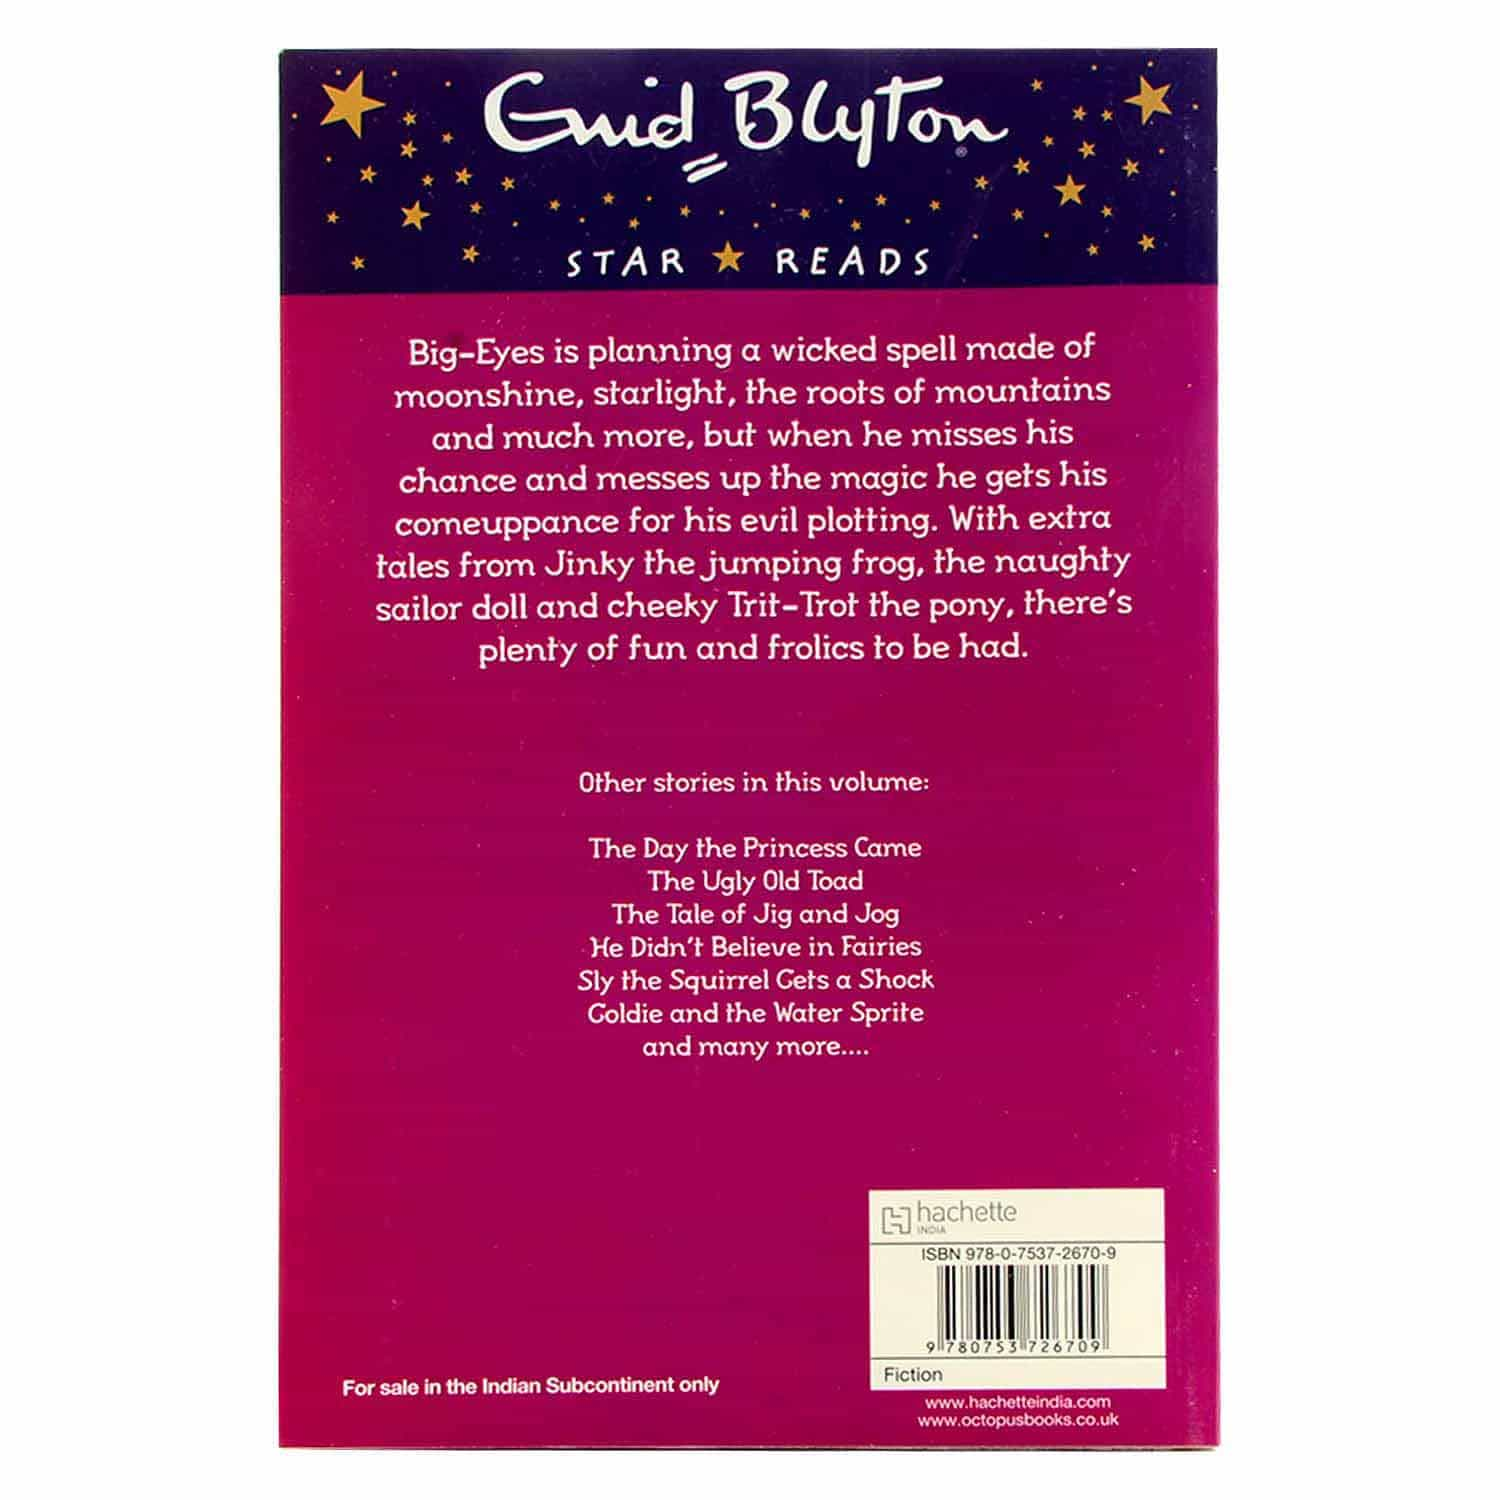 Enid Blyton - Big-Eyes the Enchanter and Other Stories